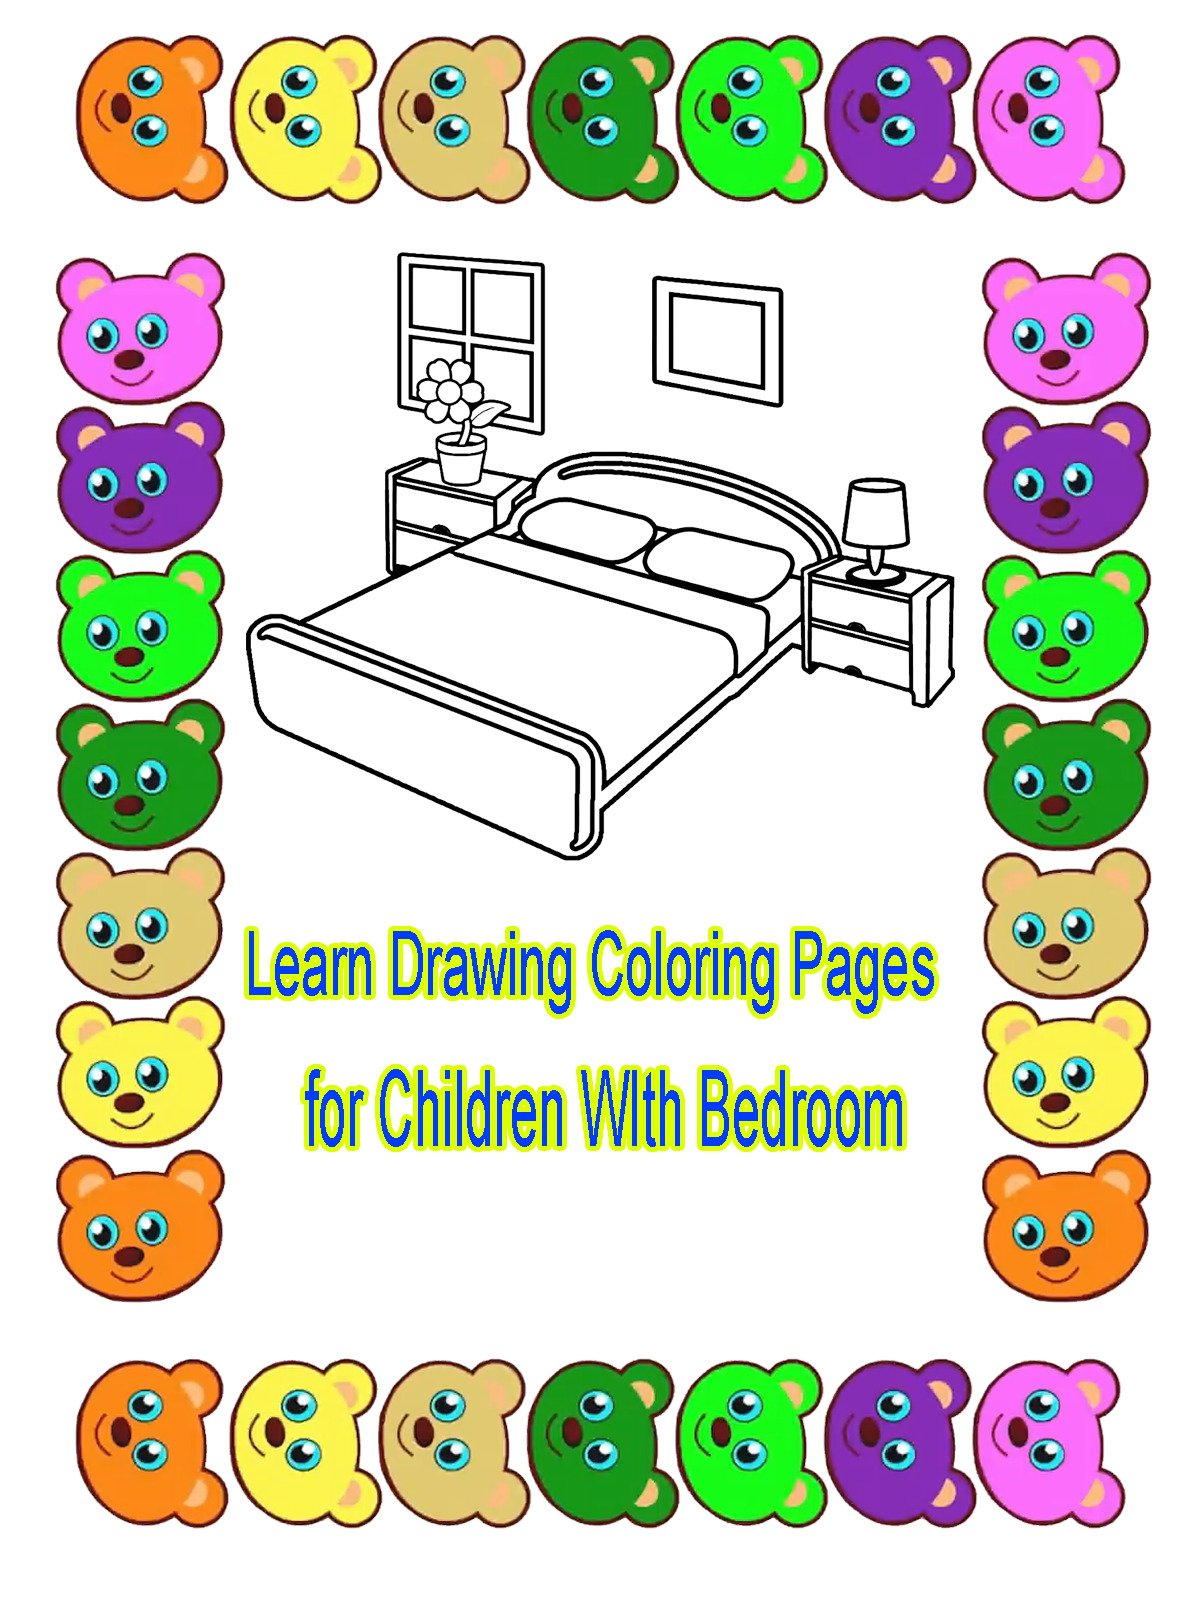 Learn Drawing Coloring Pages for Children WIth Bedroom